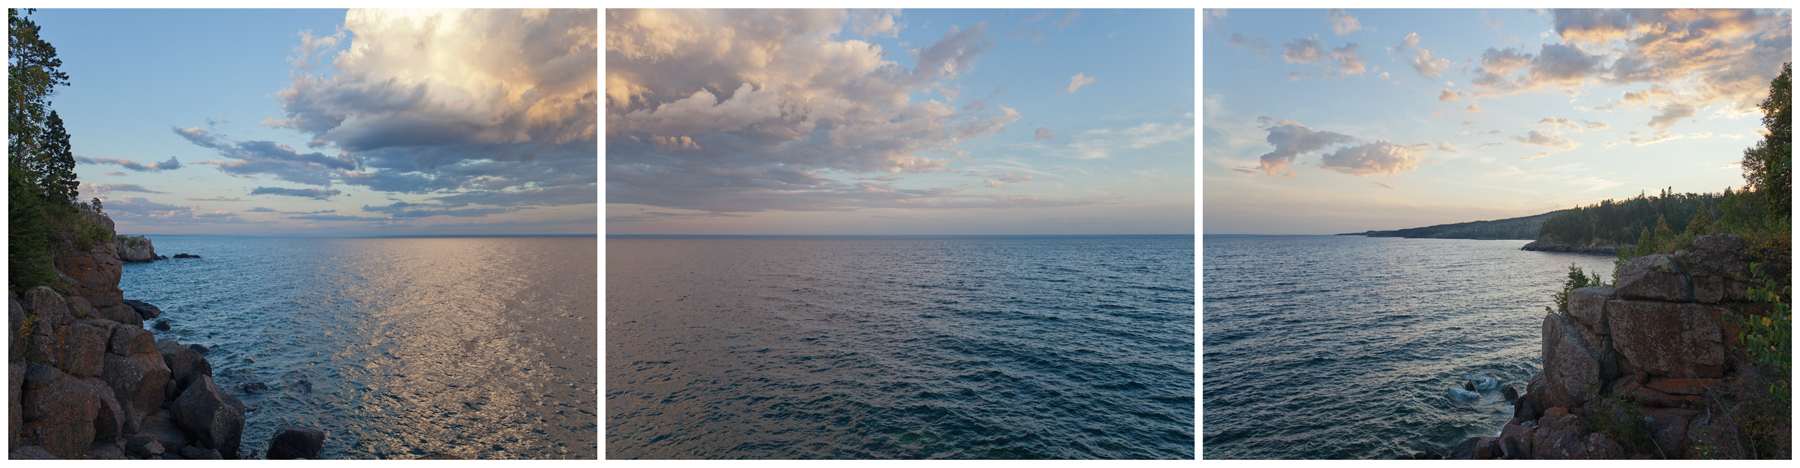 TriptychTemplate_LakeSuperior5_plus_WithBorders